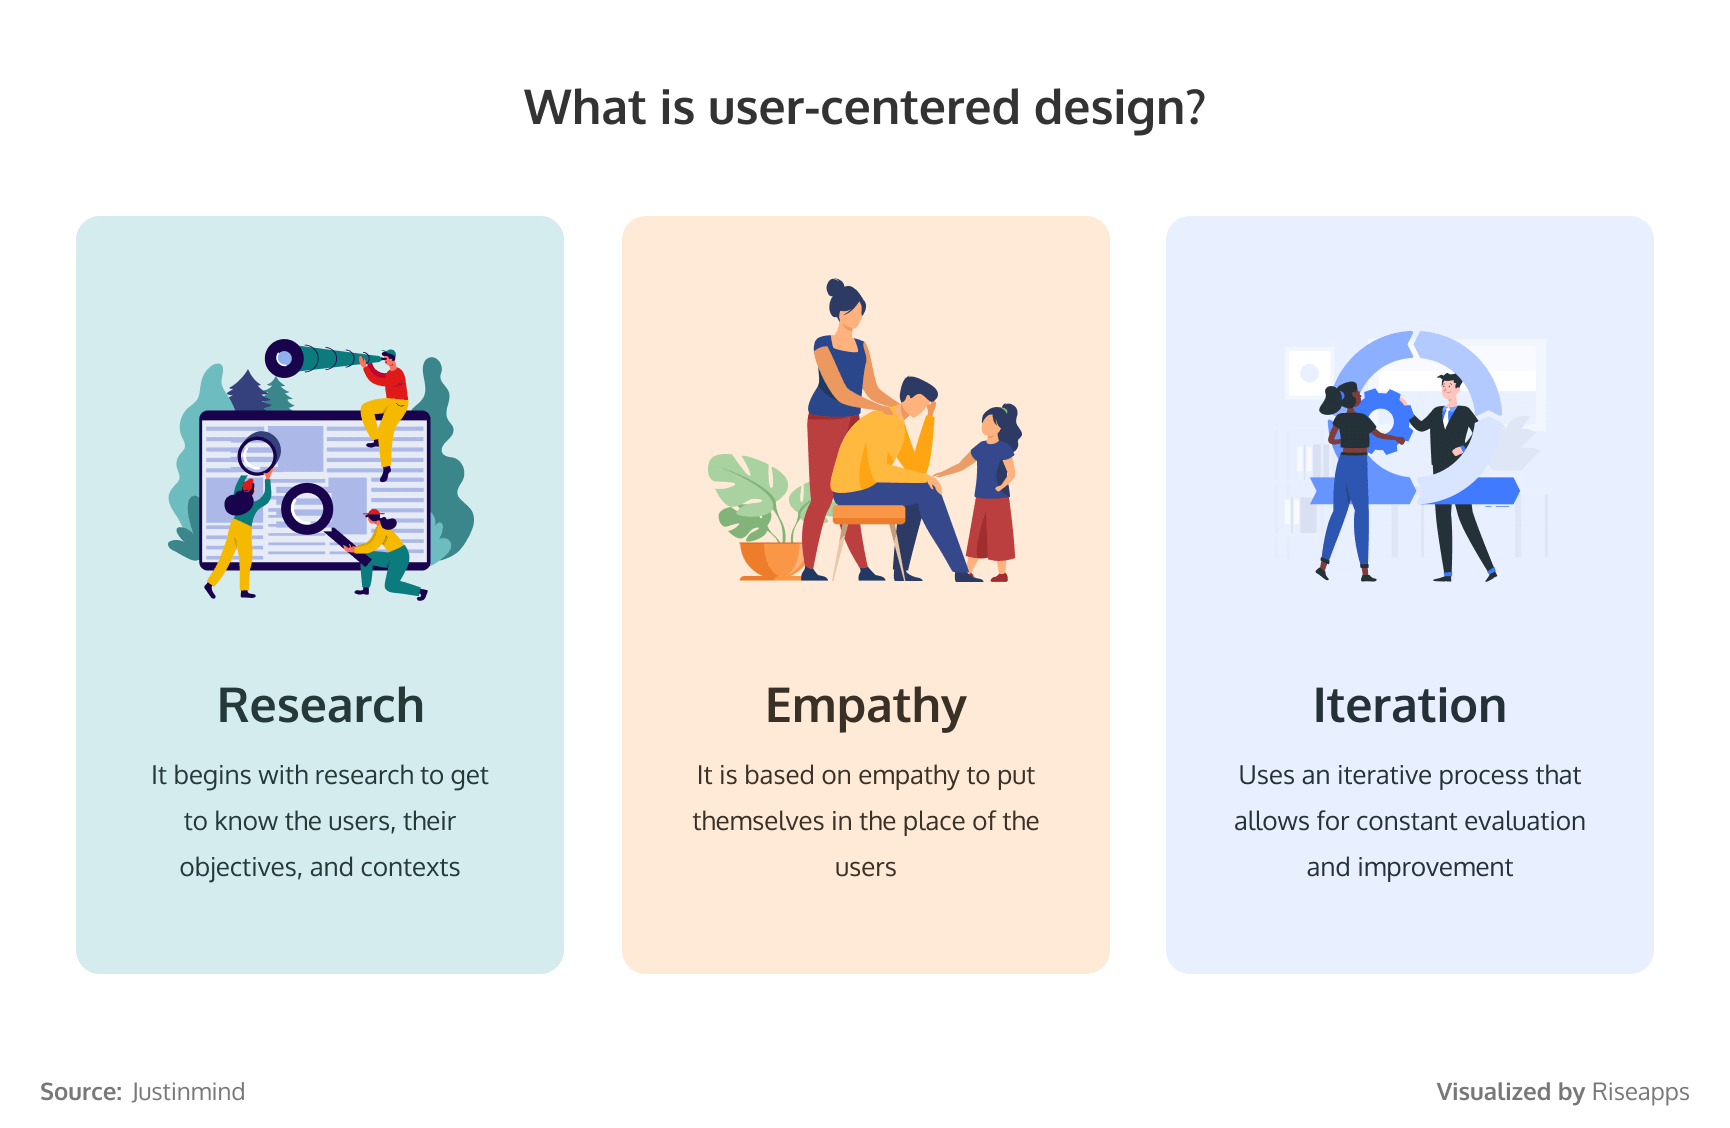 What is user-centered design?